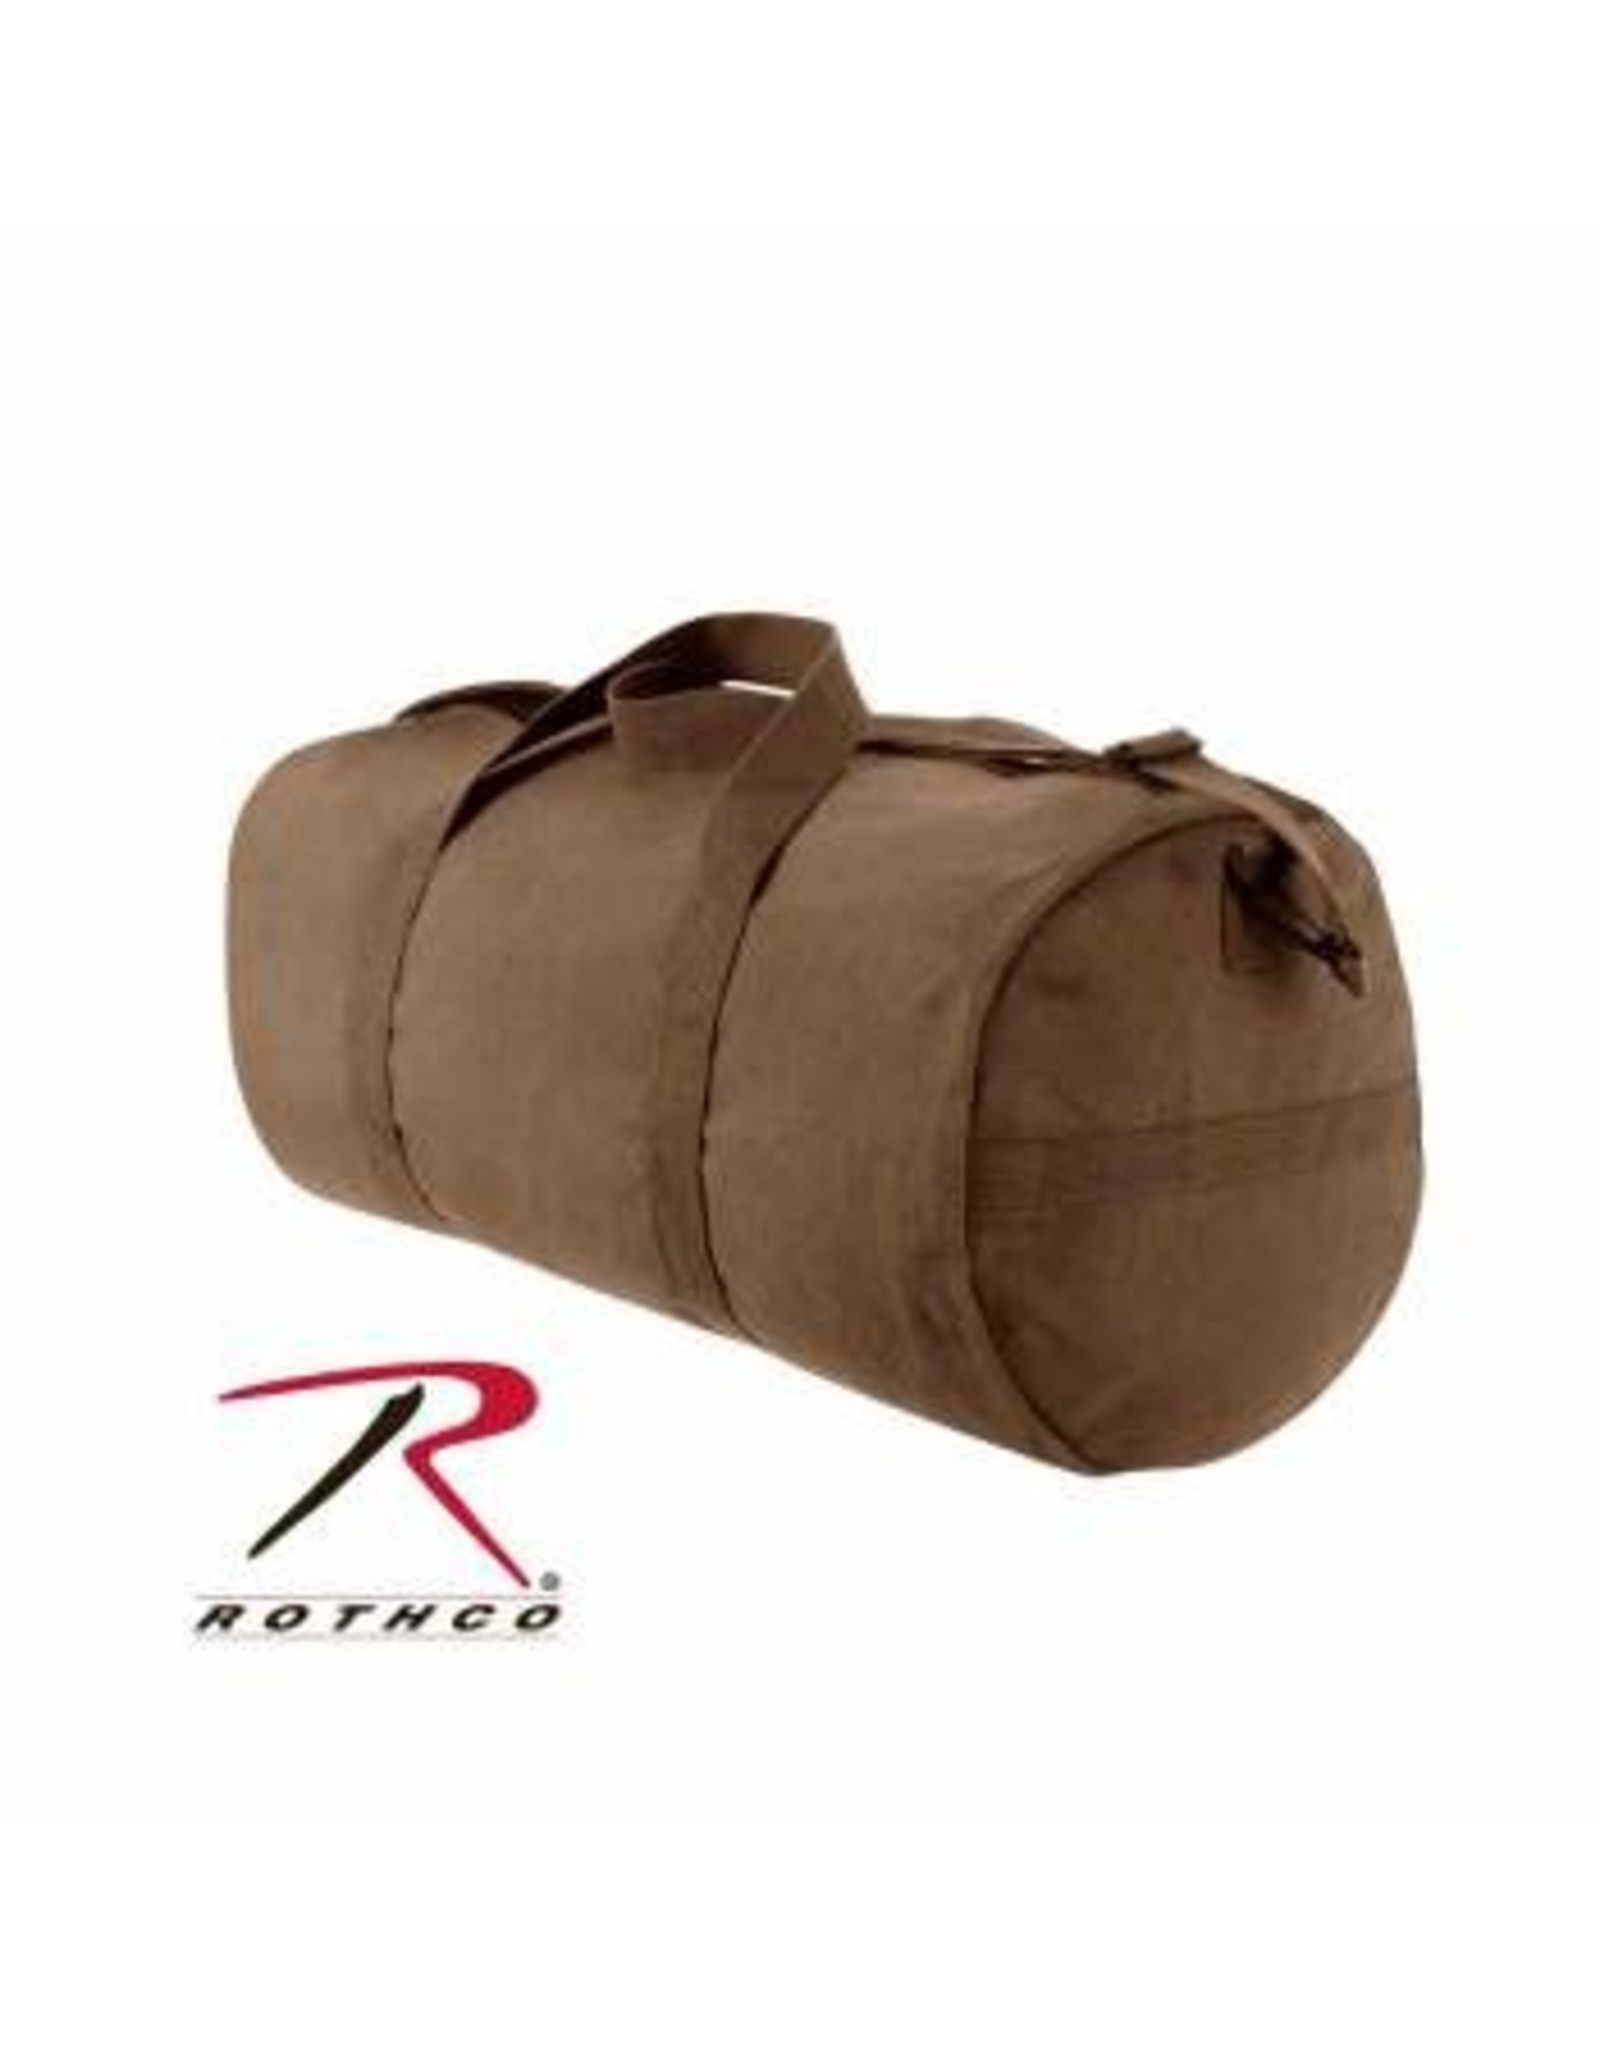 ROTHCO ROTHCO CANVAS SHOULDER BAG - 24'' O D